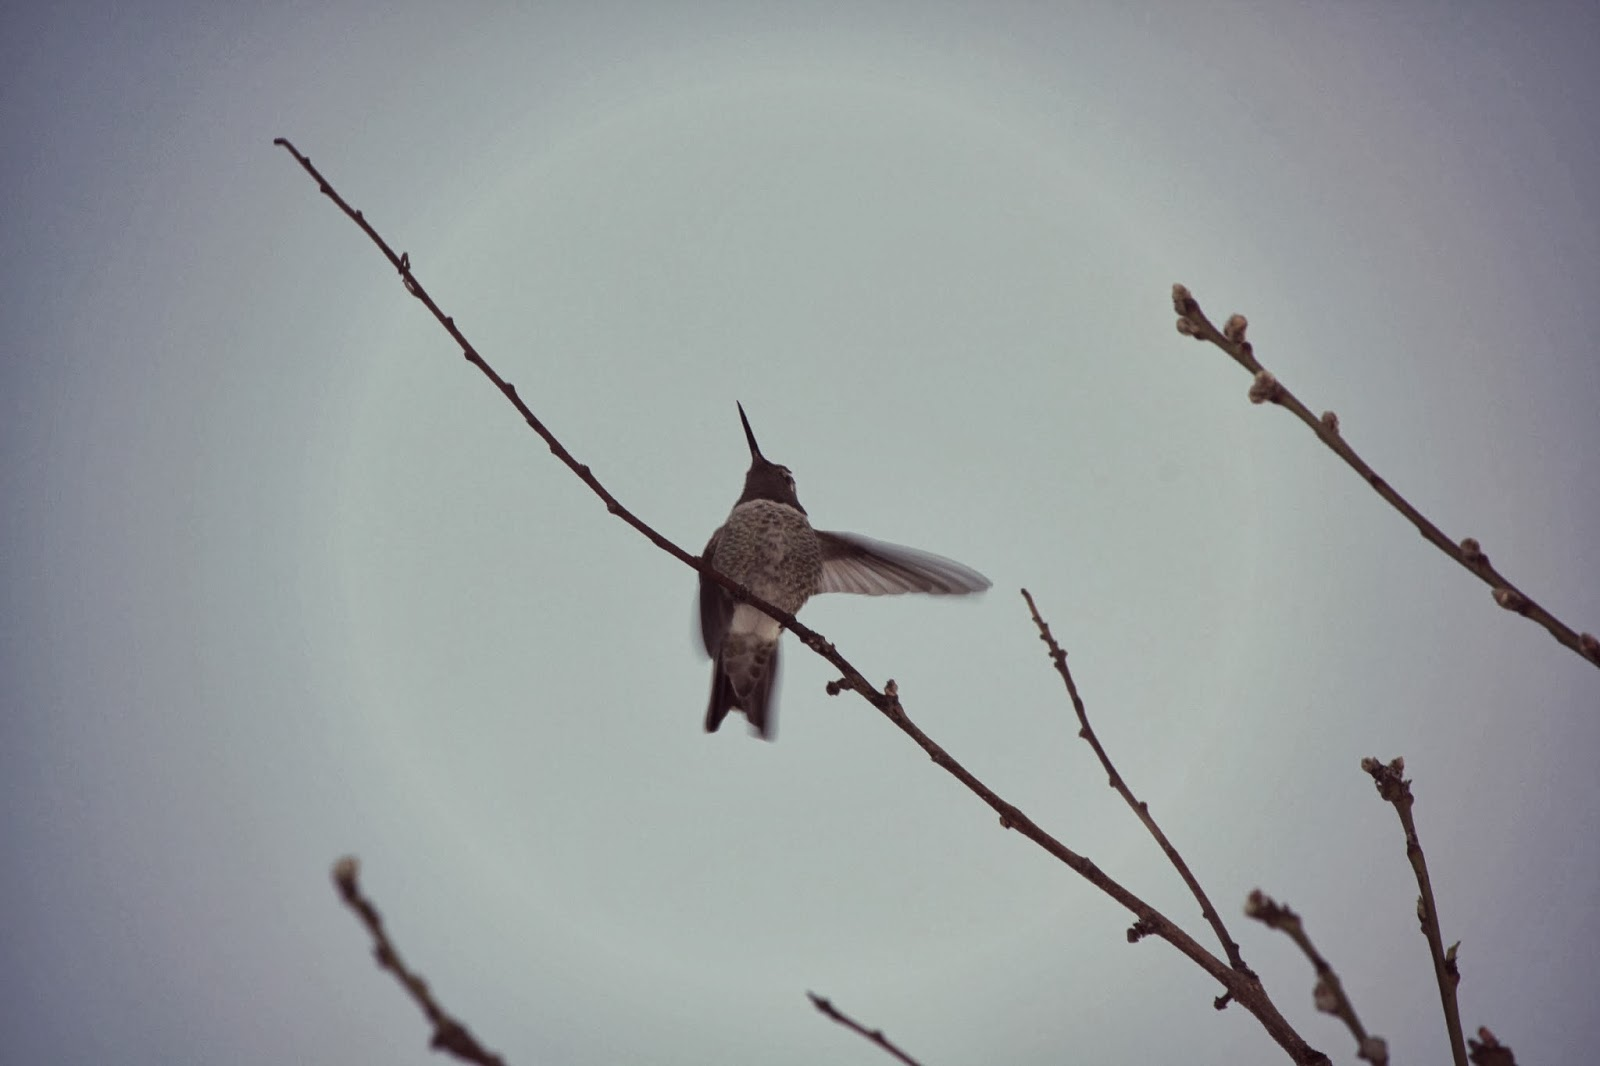 http://www.hummingbirdsociety.org/index.php